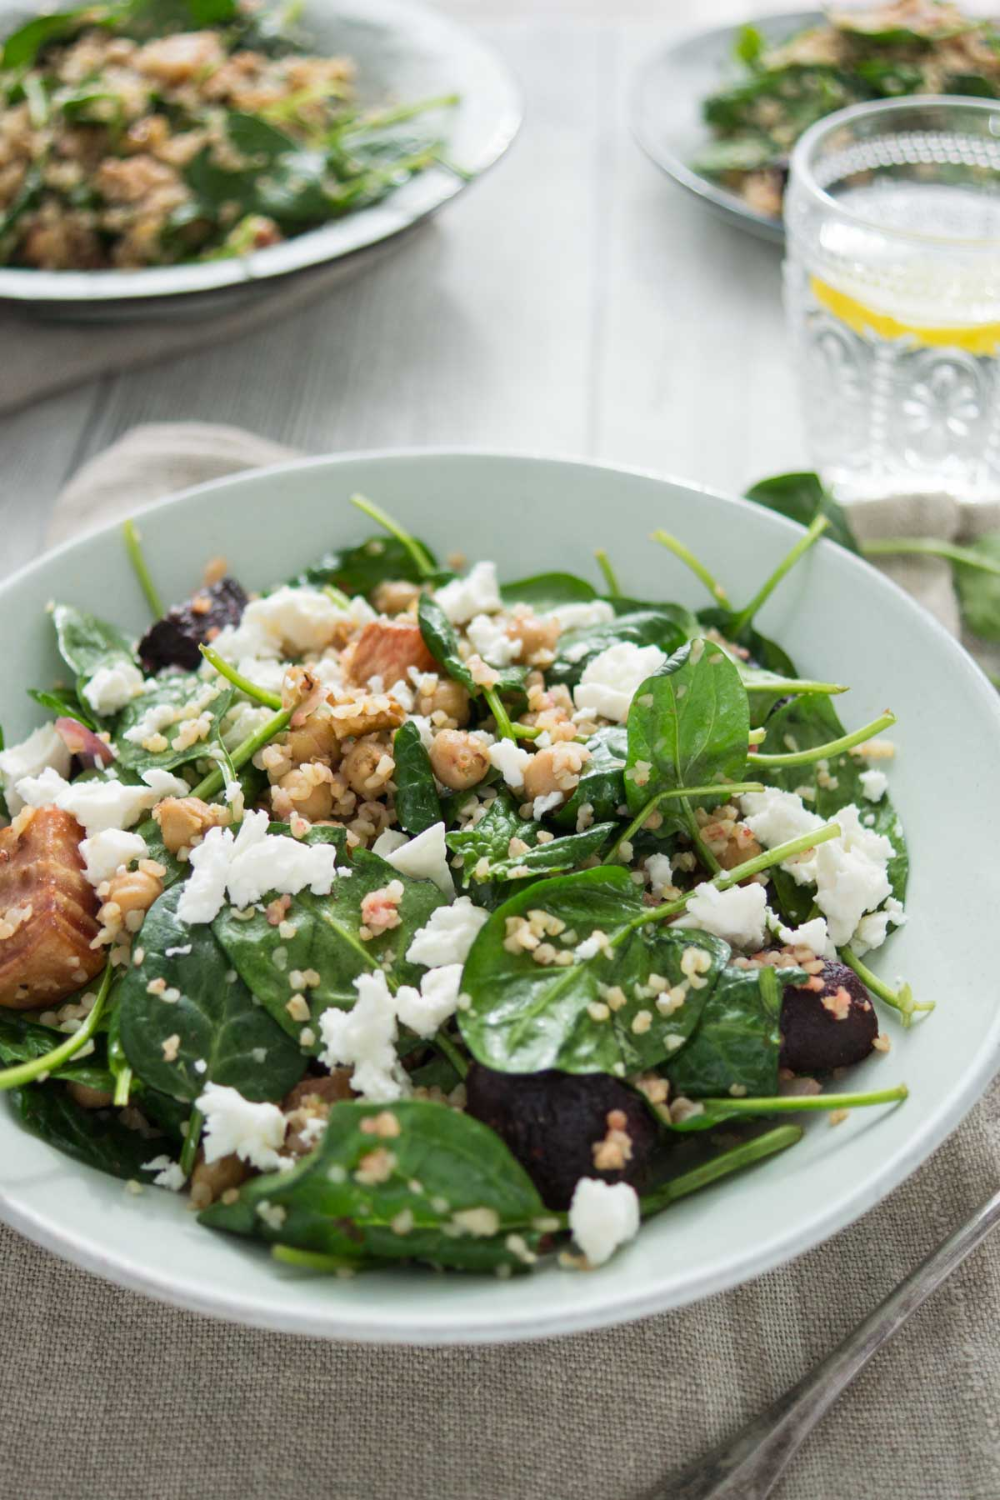 Spinach Salad with Roasted Beets, Chickpeas, Bulgur and Feta